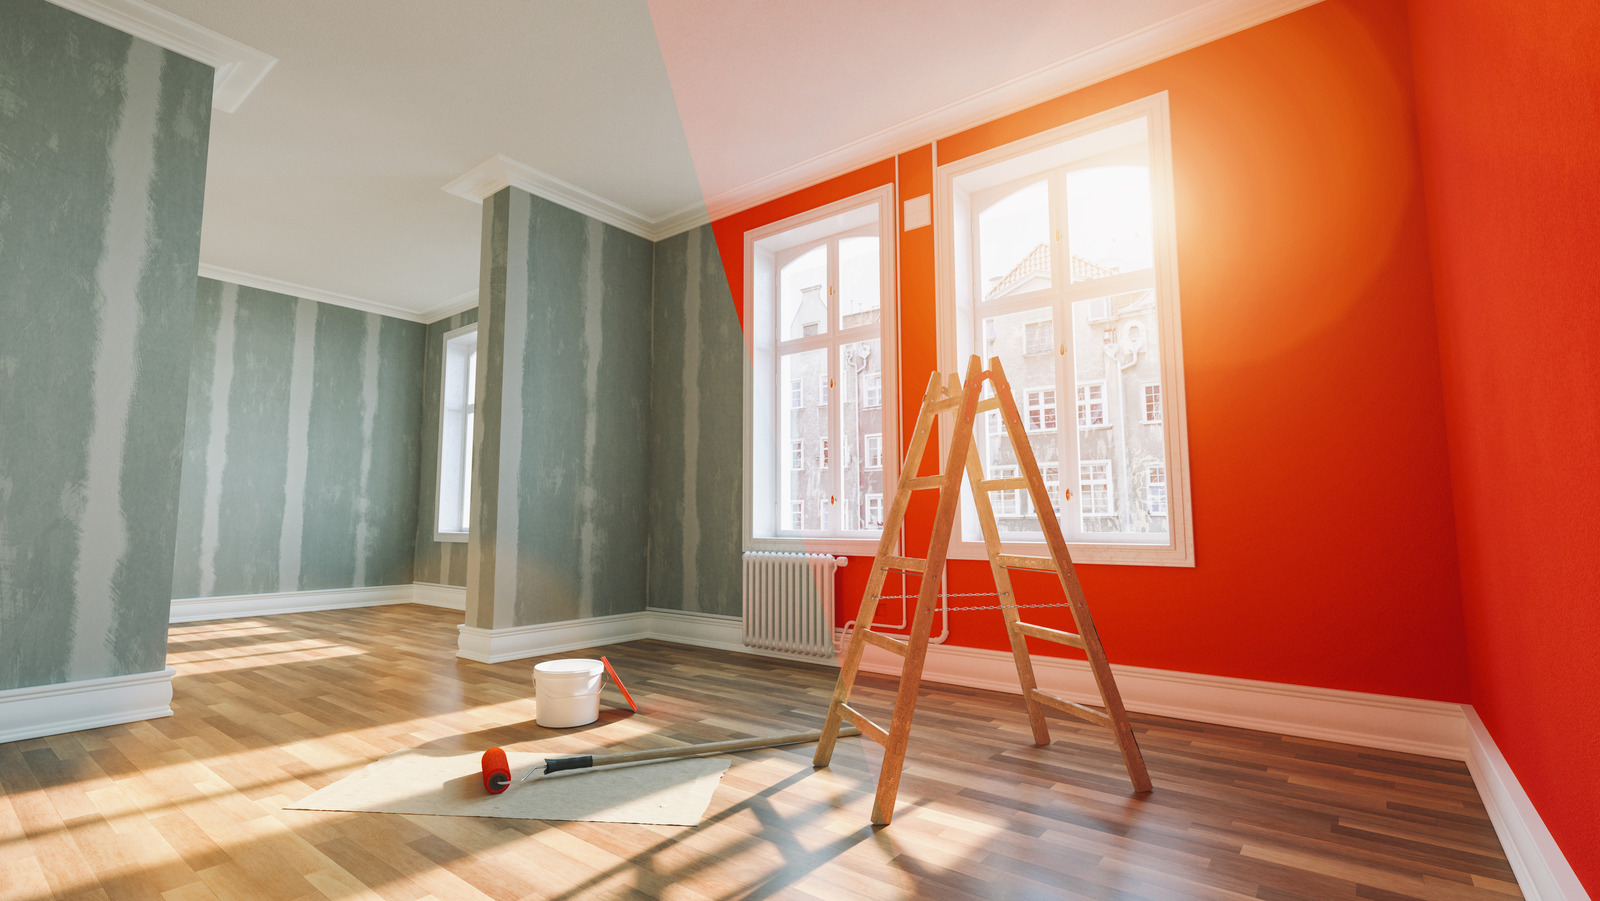 8 Best Ways To Get Rid Of Paint Smell, Best Way To Get Smell Out Of Laminate Flooring